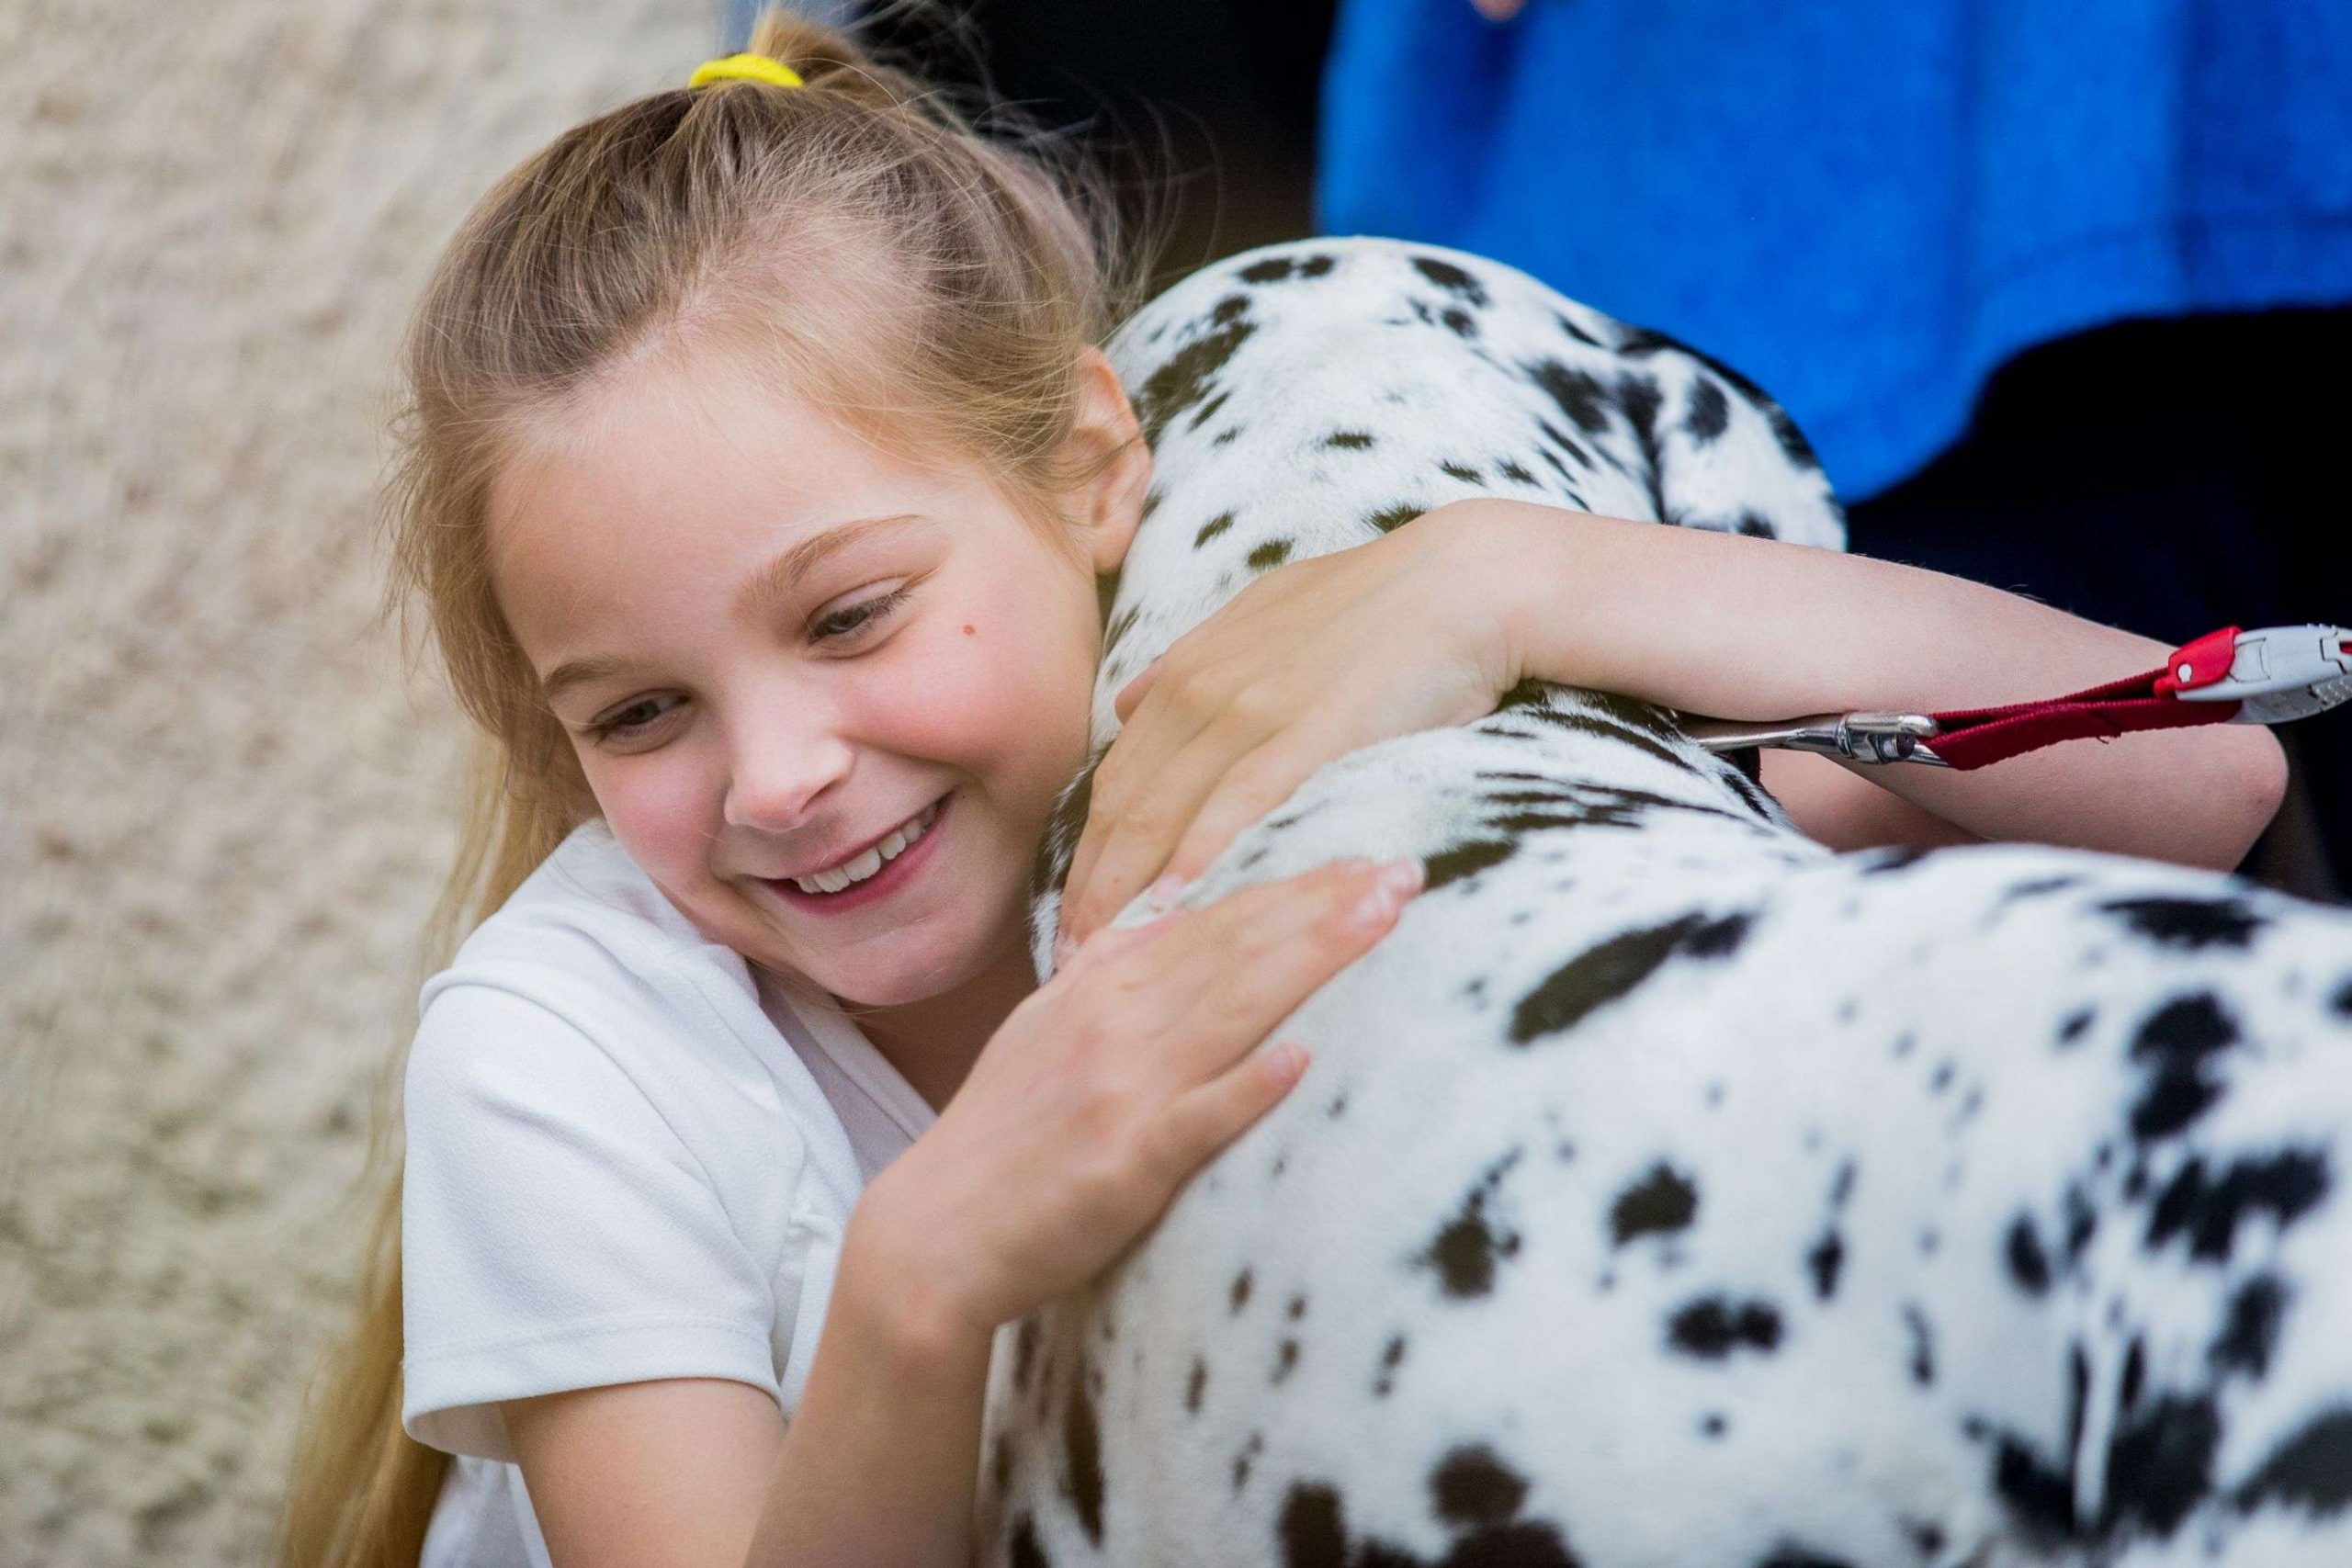 Barking Mad Dog Sitting Elsie May host home boarding cuddle at door dalmation Lottie